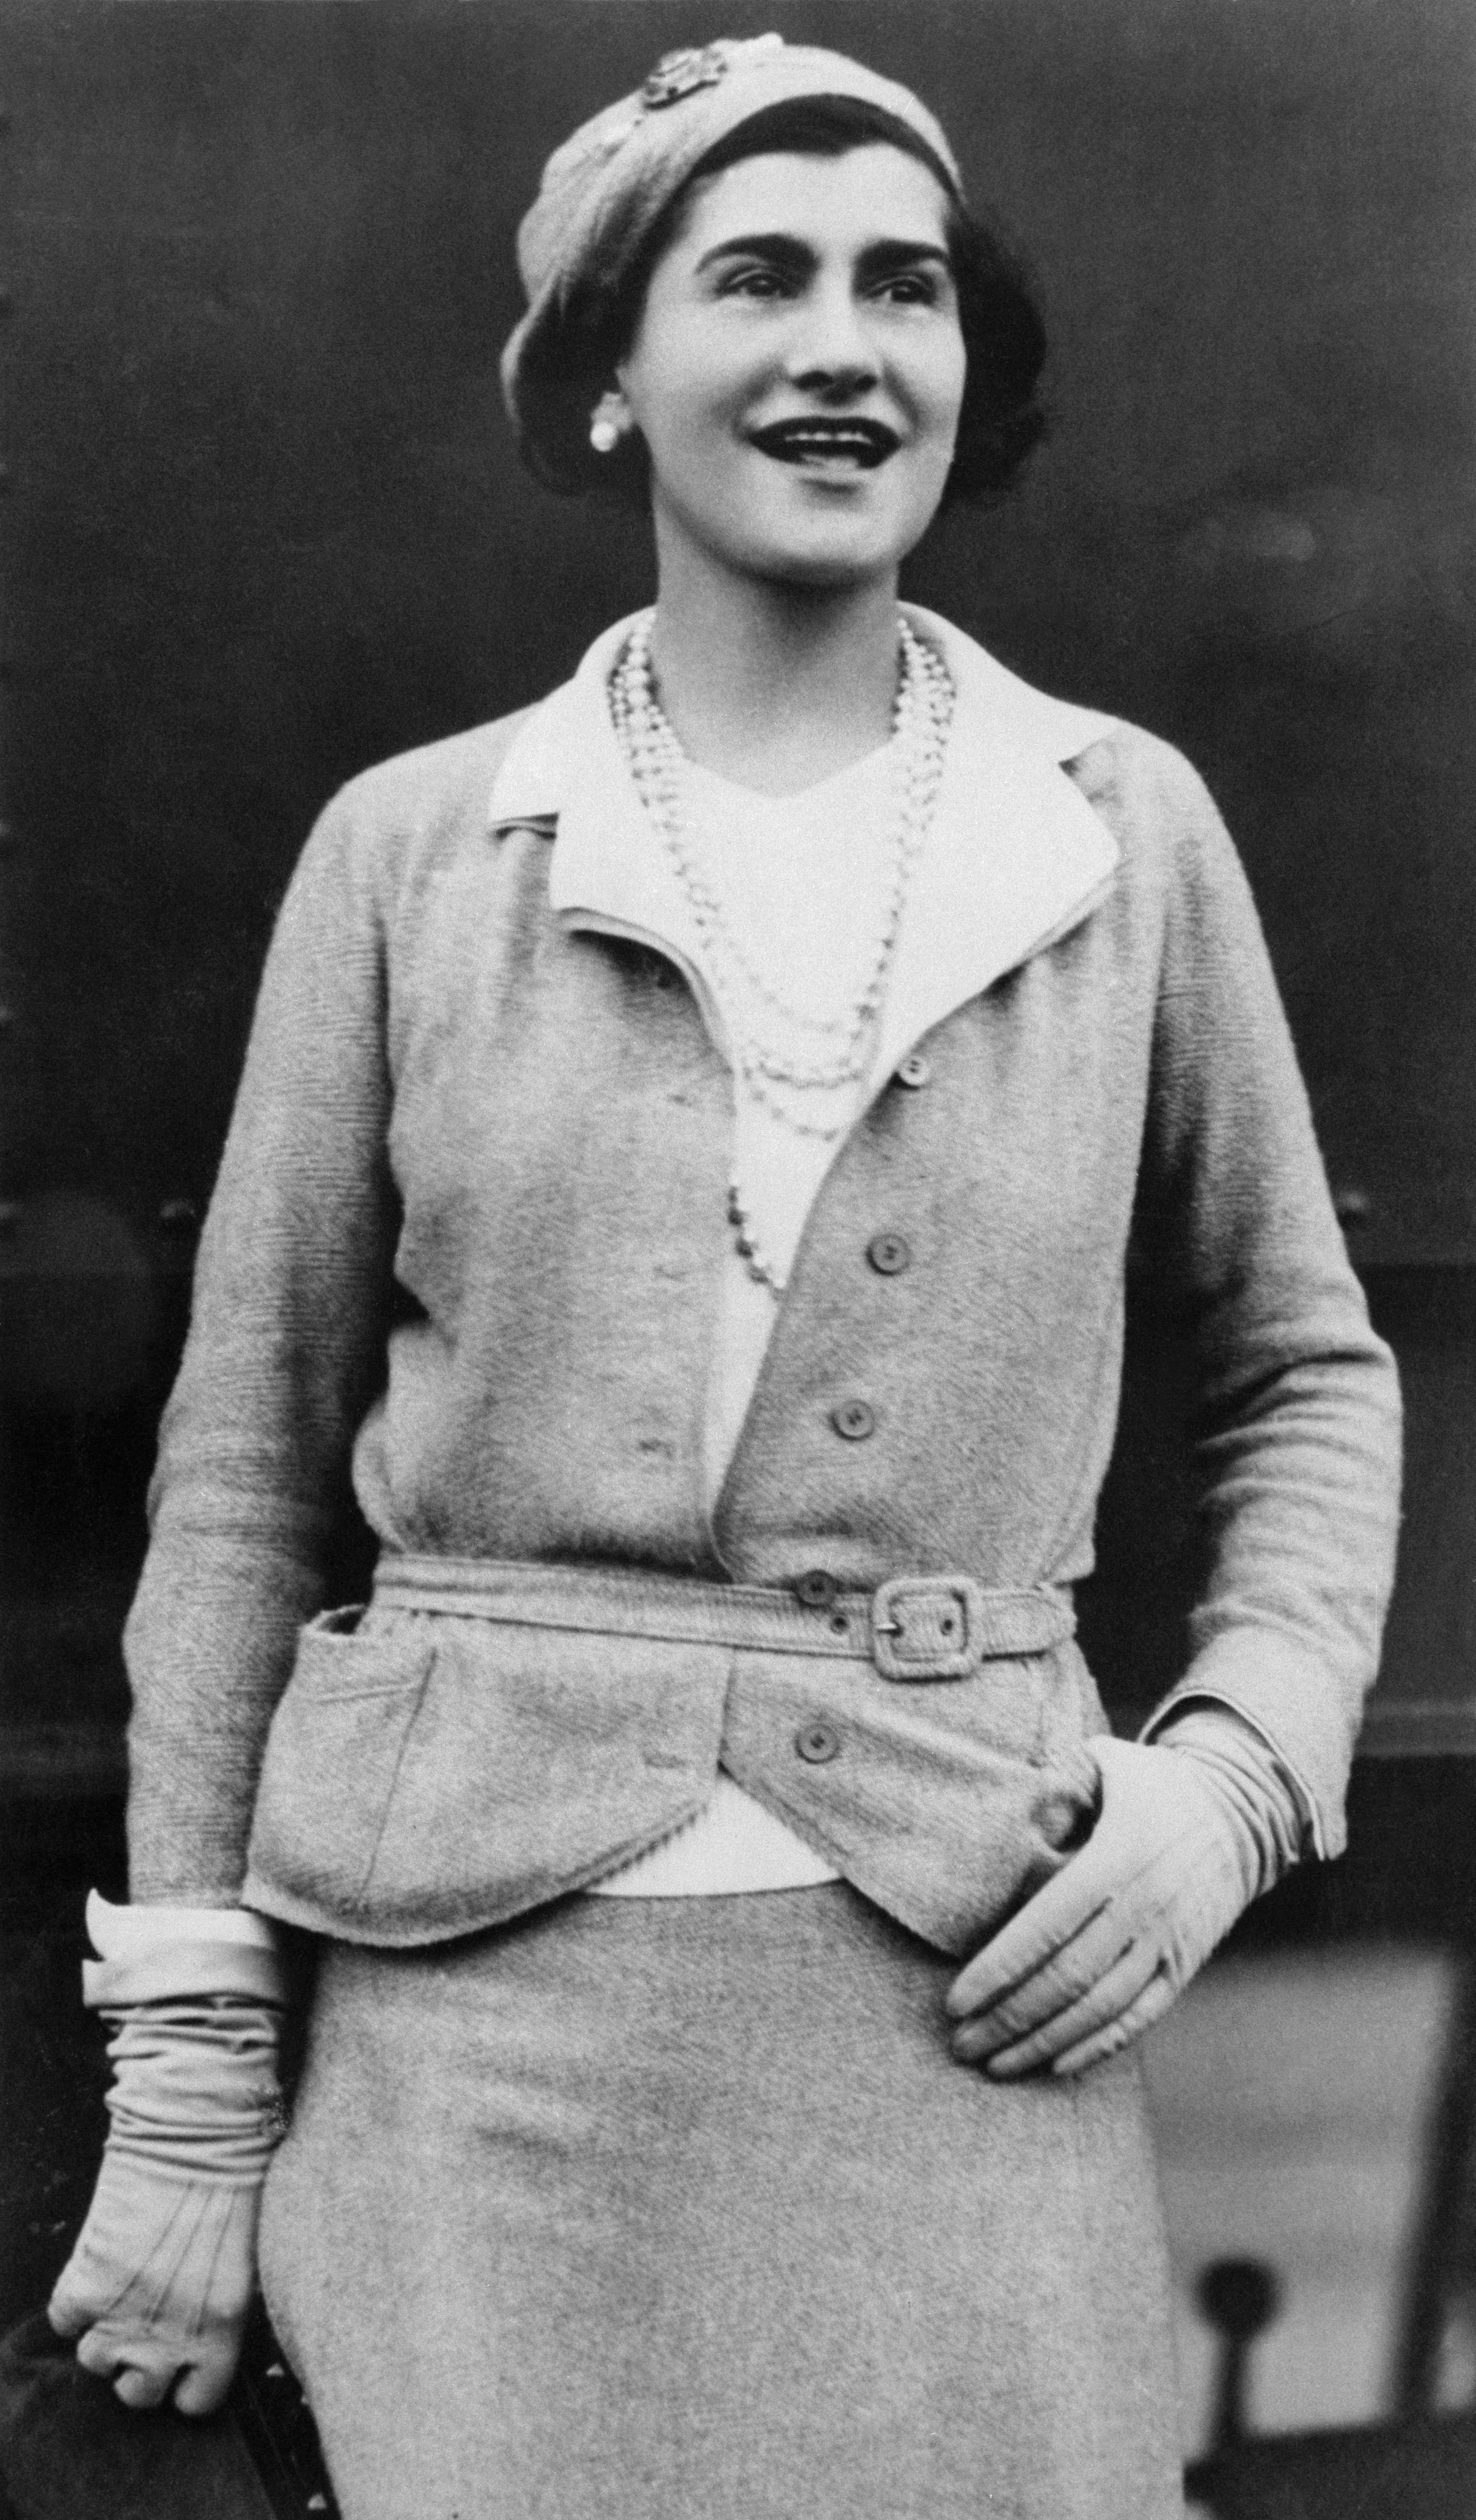 Coco Chanel 告訴你 女人最理想的衣櫥應該有6大元素: The Endlessly Quotable Coco